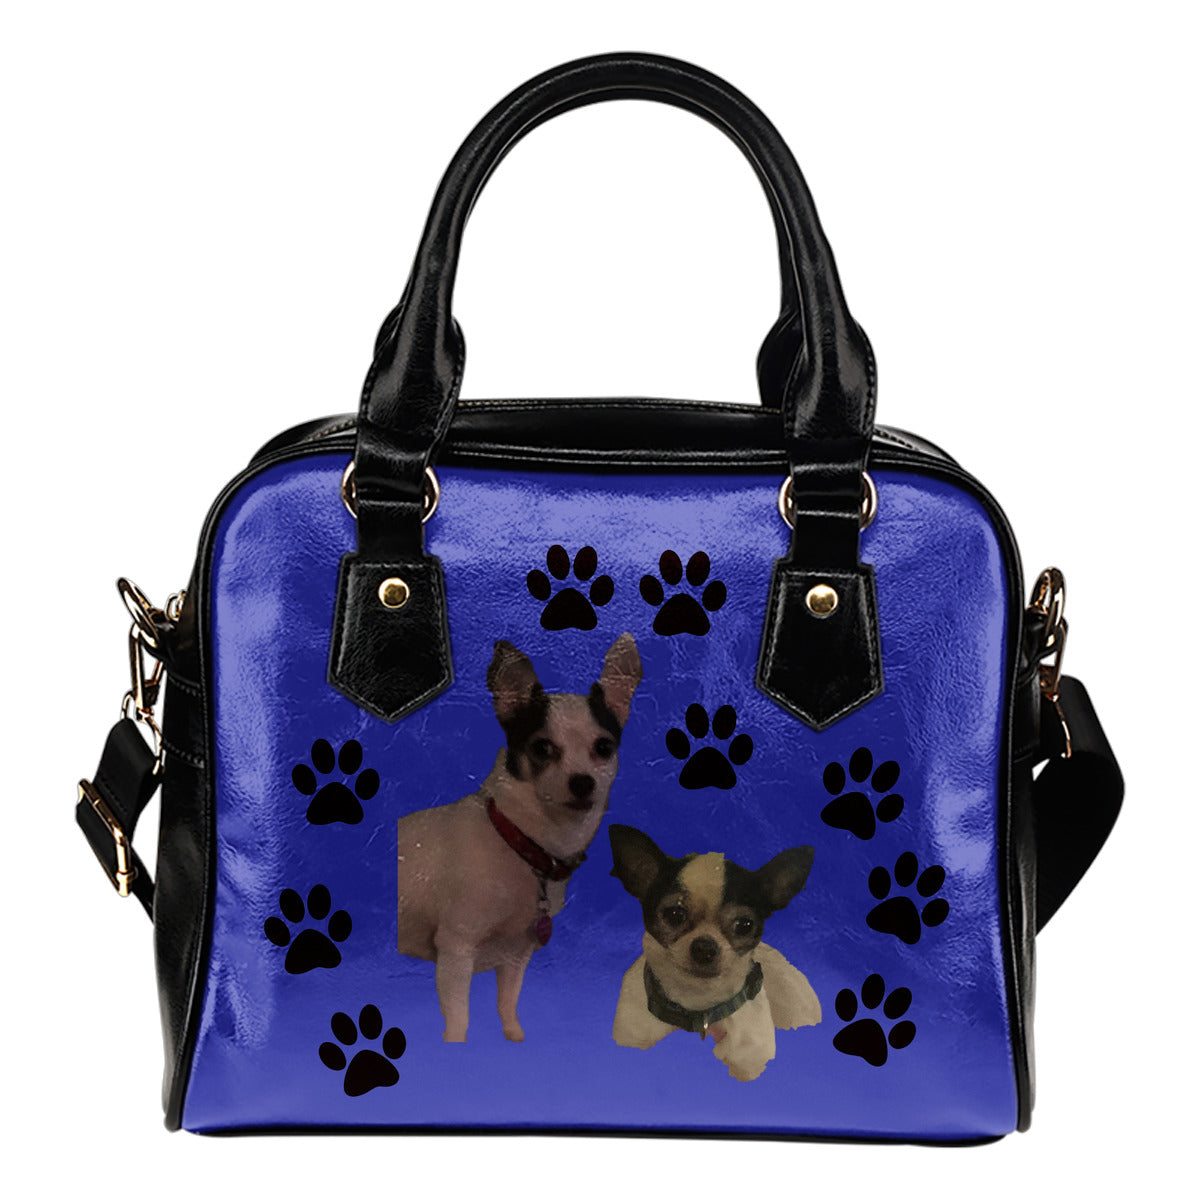 Chihuahua Shoulder Bag - Paw Print